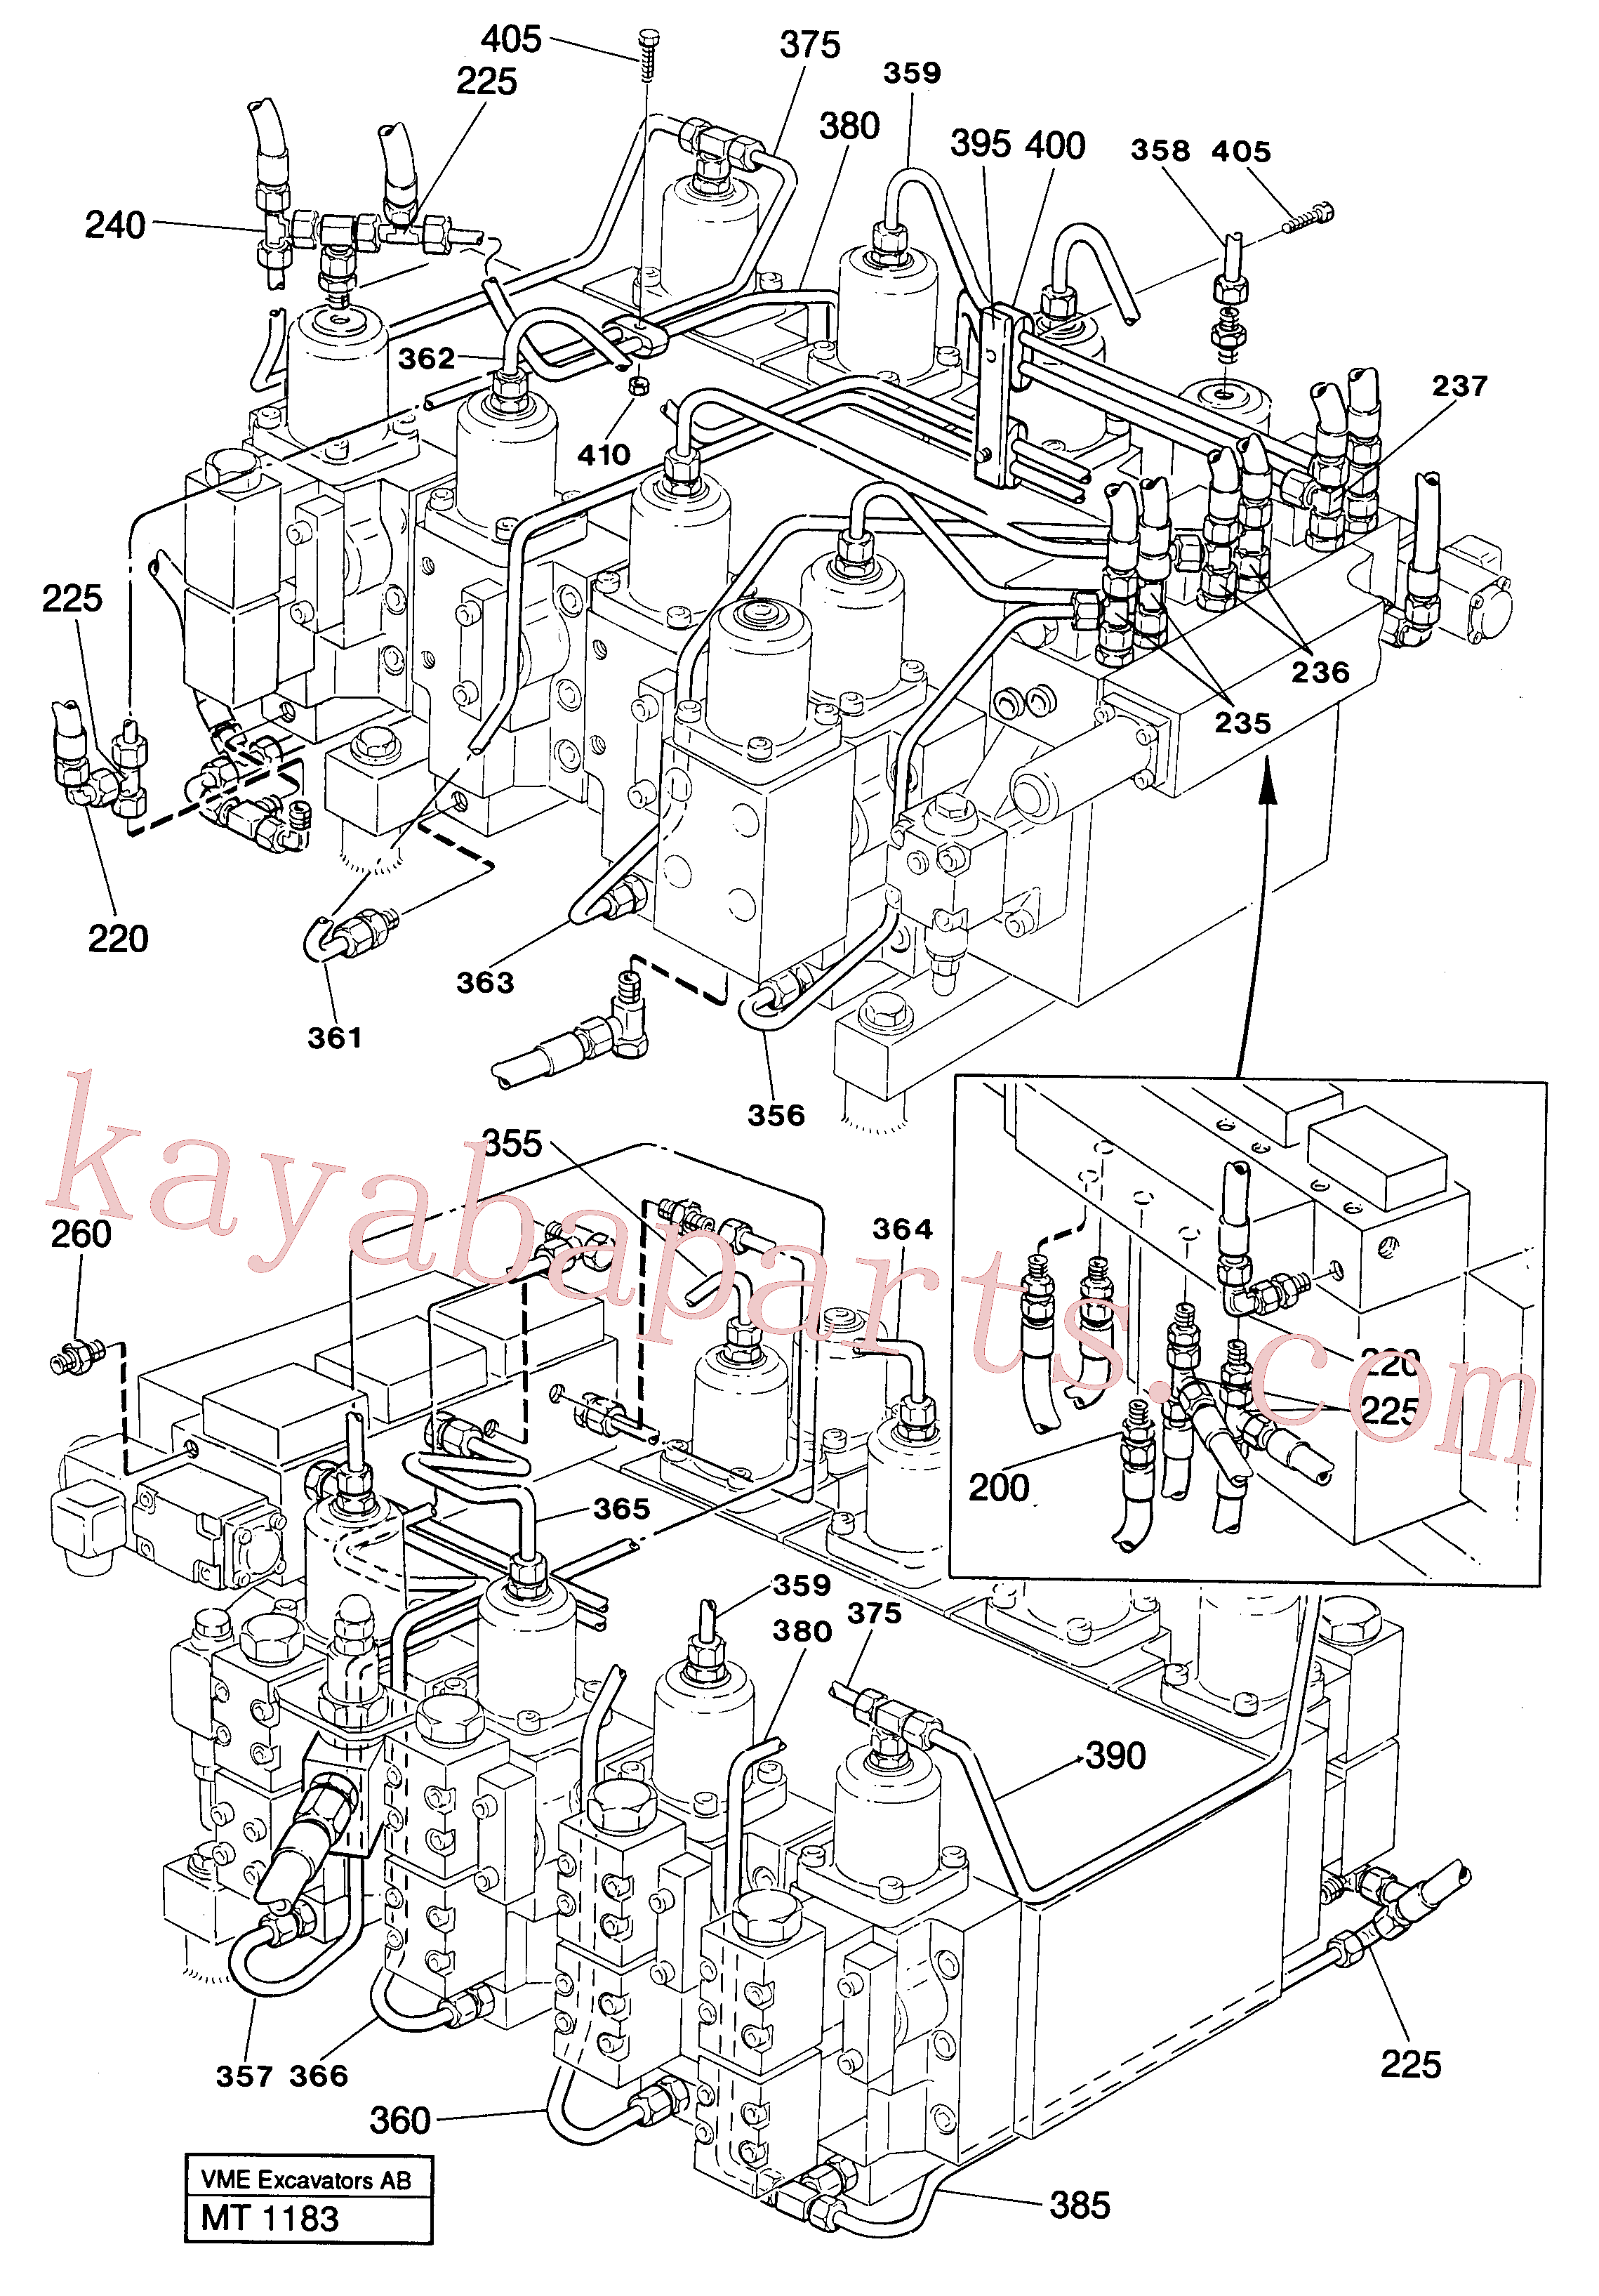 VOE13964042 for Volvo Main valve assembly with connections(MT1183 assembly)